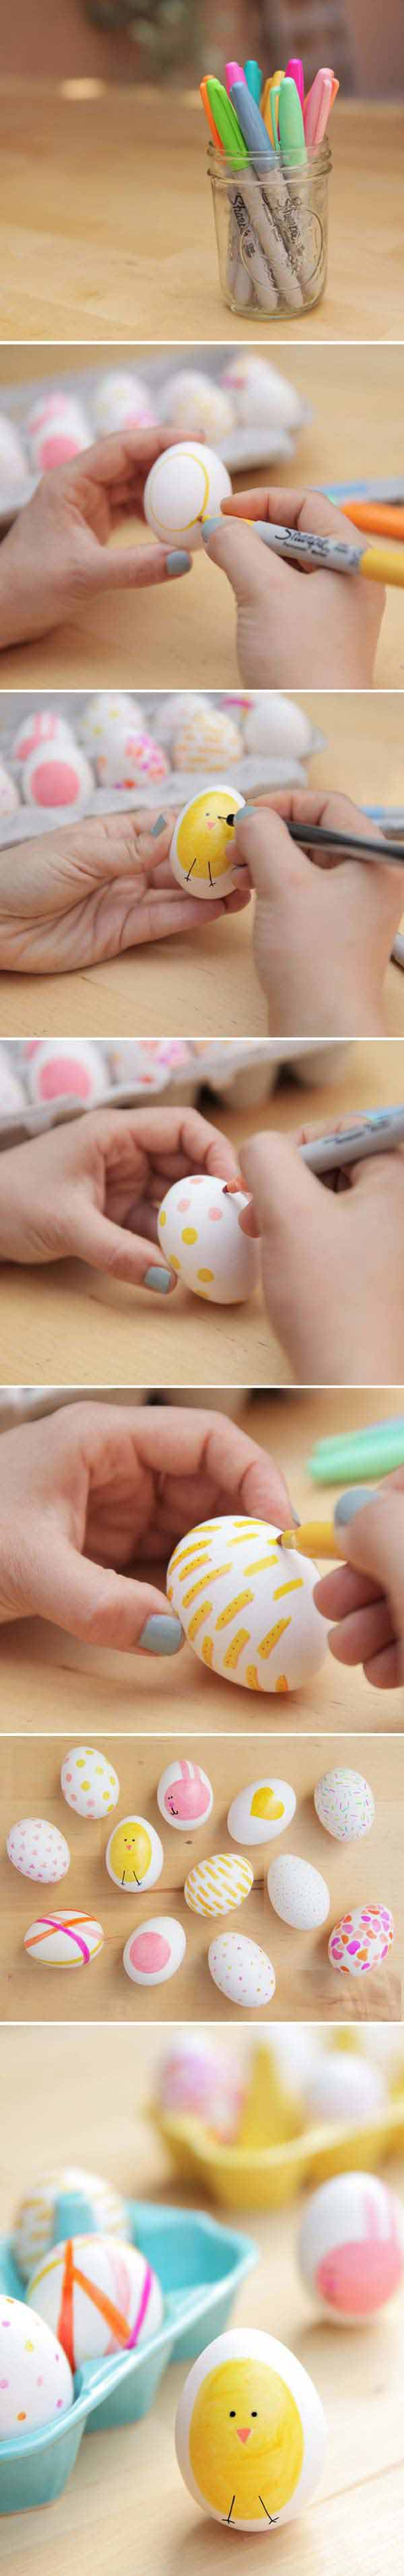 USE SHARPIES TO DECORATE A FEW EASTER EGGS DIFFERENTLY-Easter-Crafts DIY Cute and Creative Easter Crafts For Kids